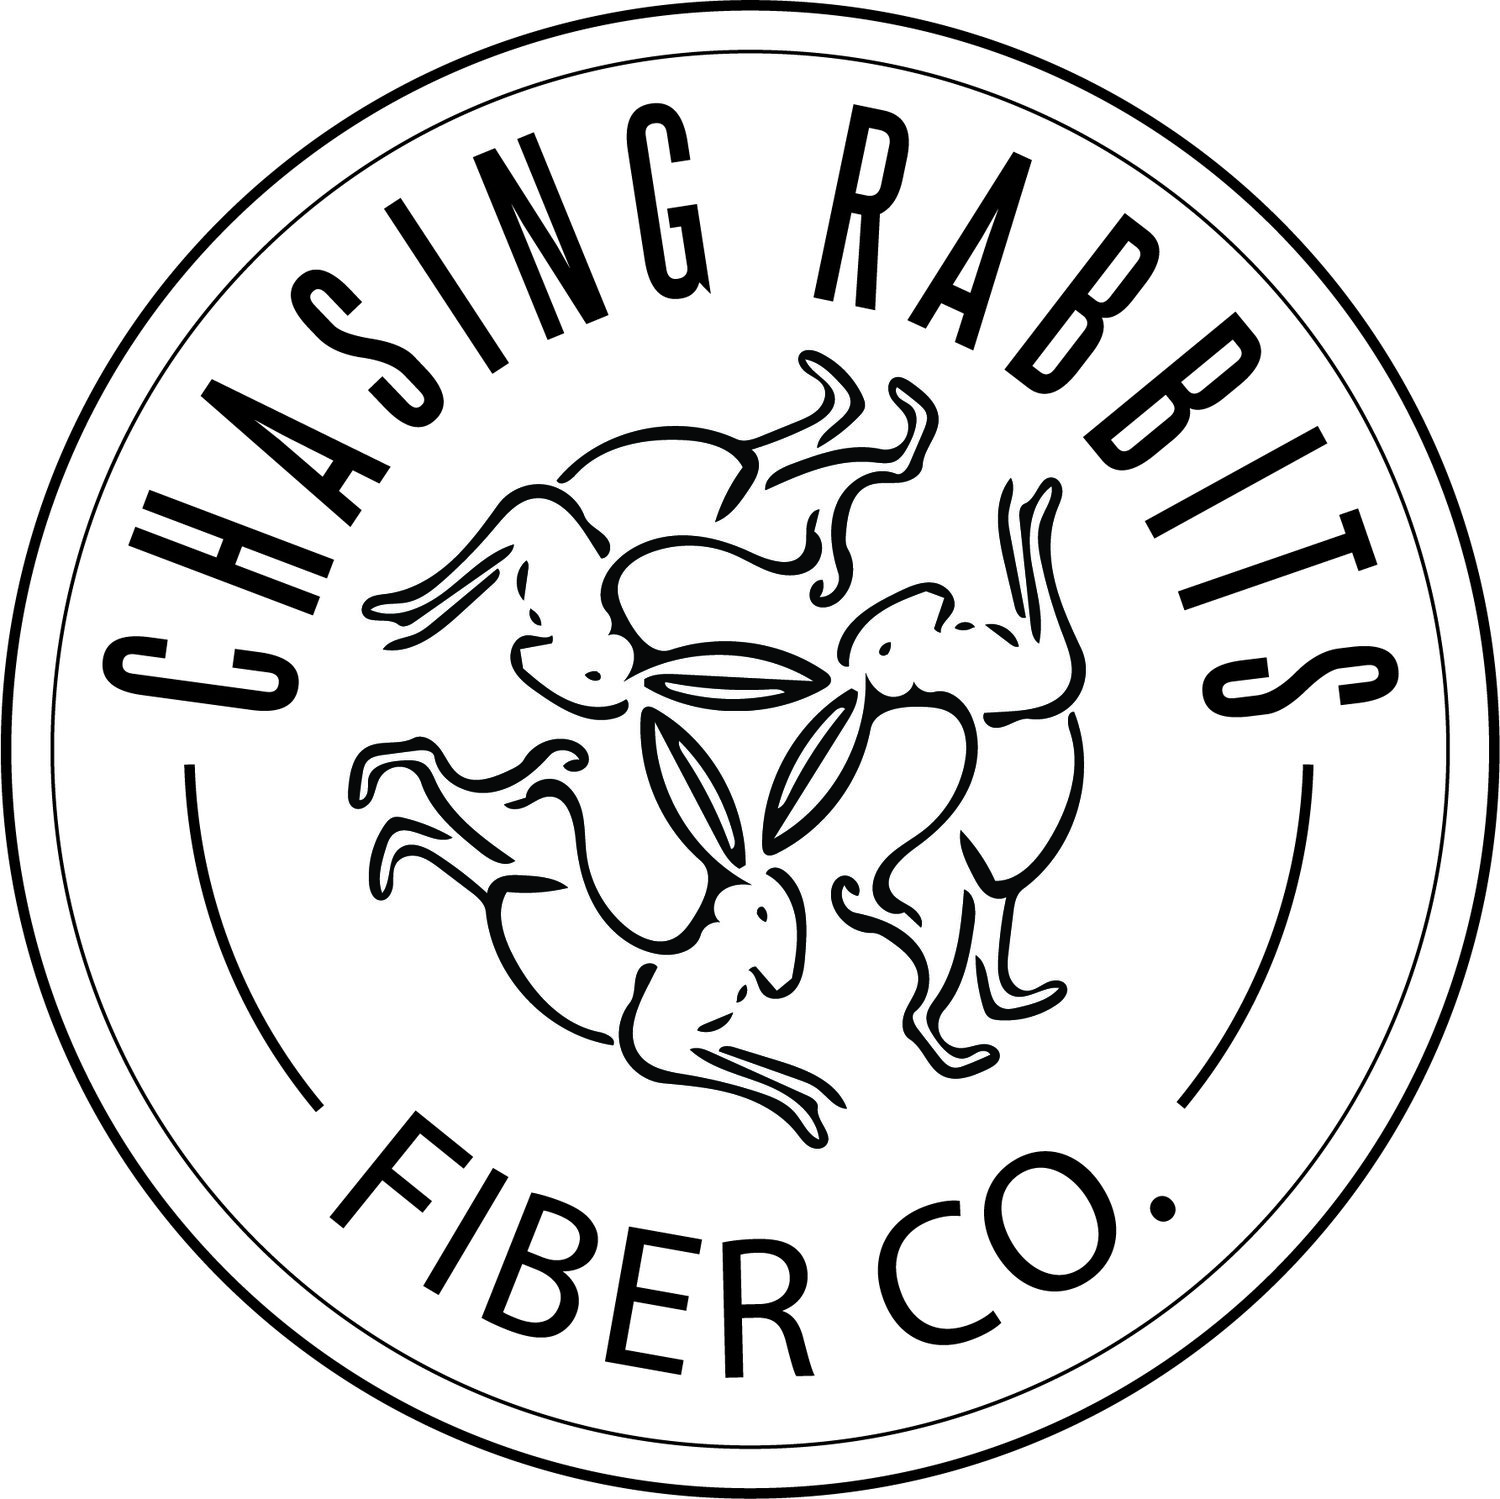 Chasing Rabbits Fiber Co.